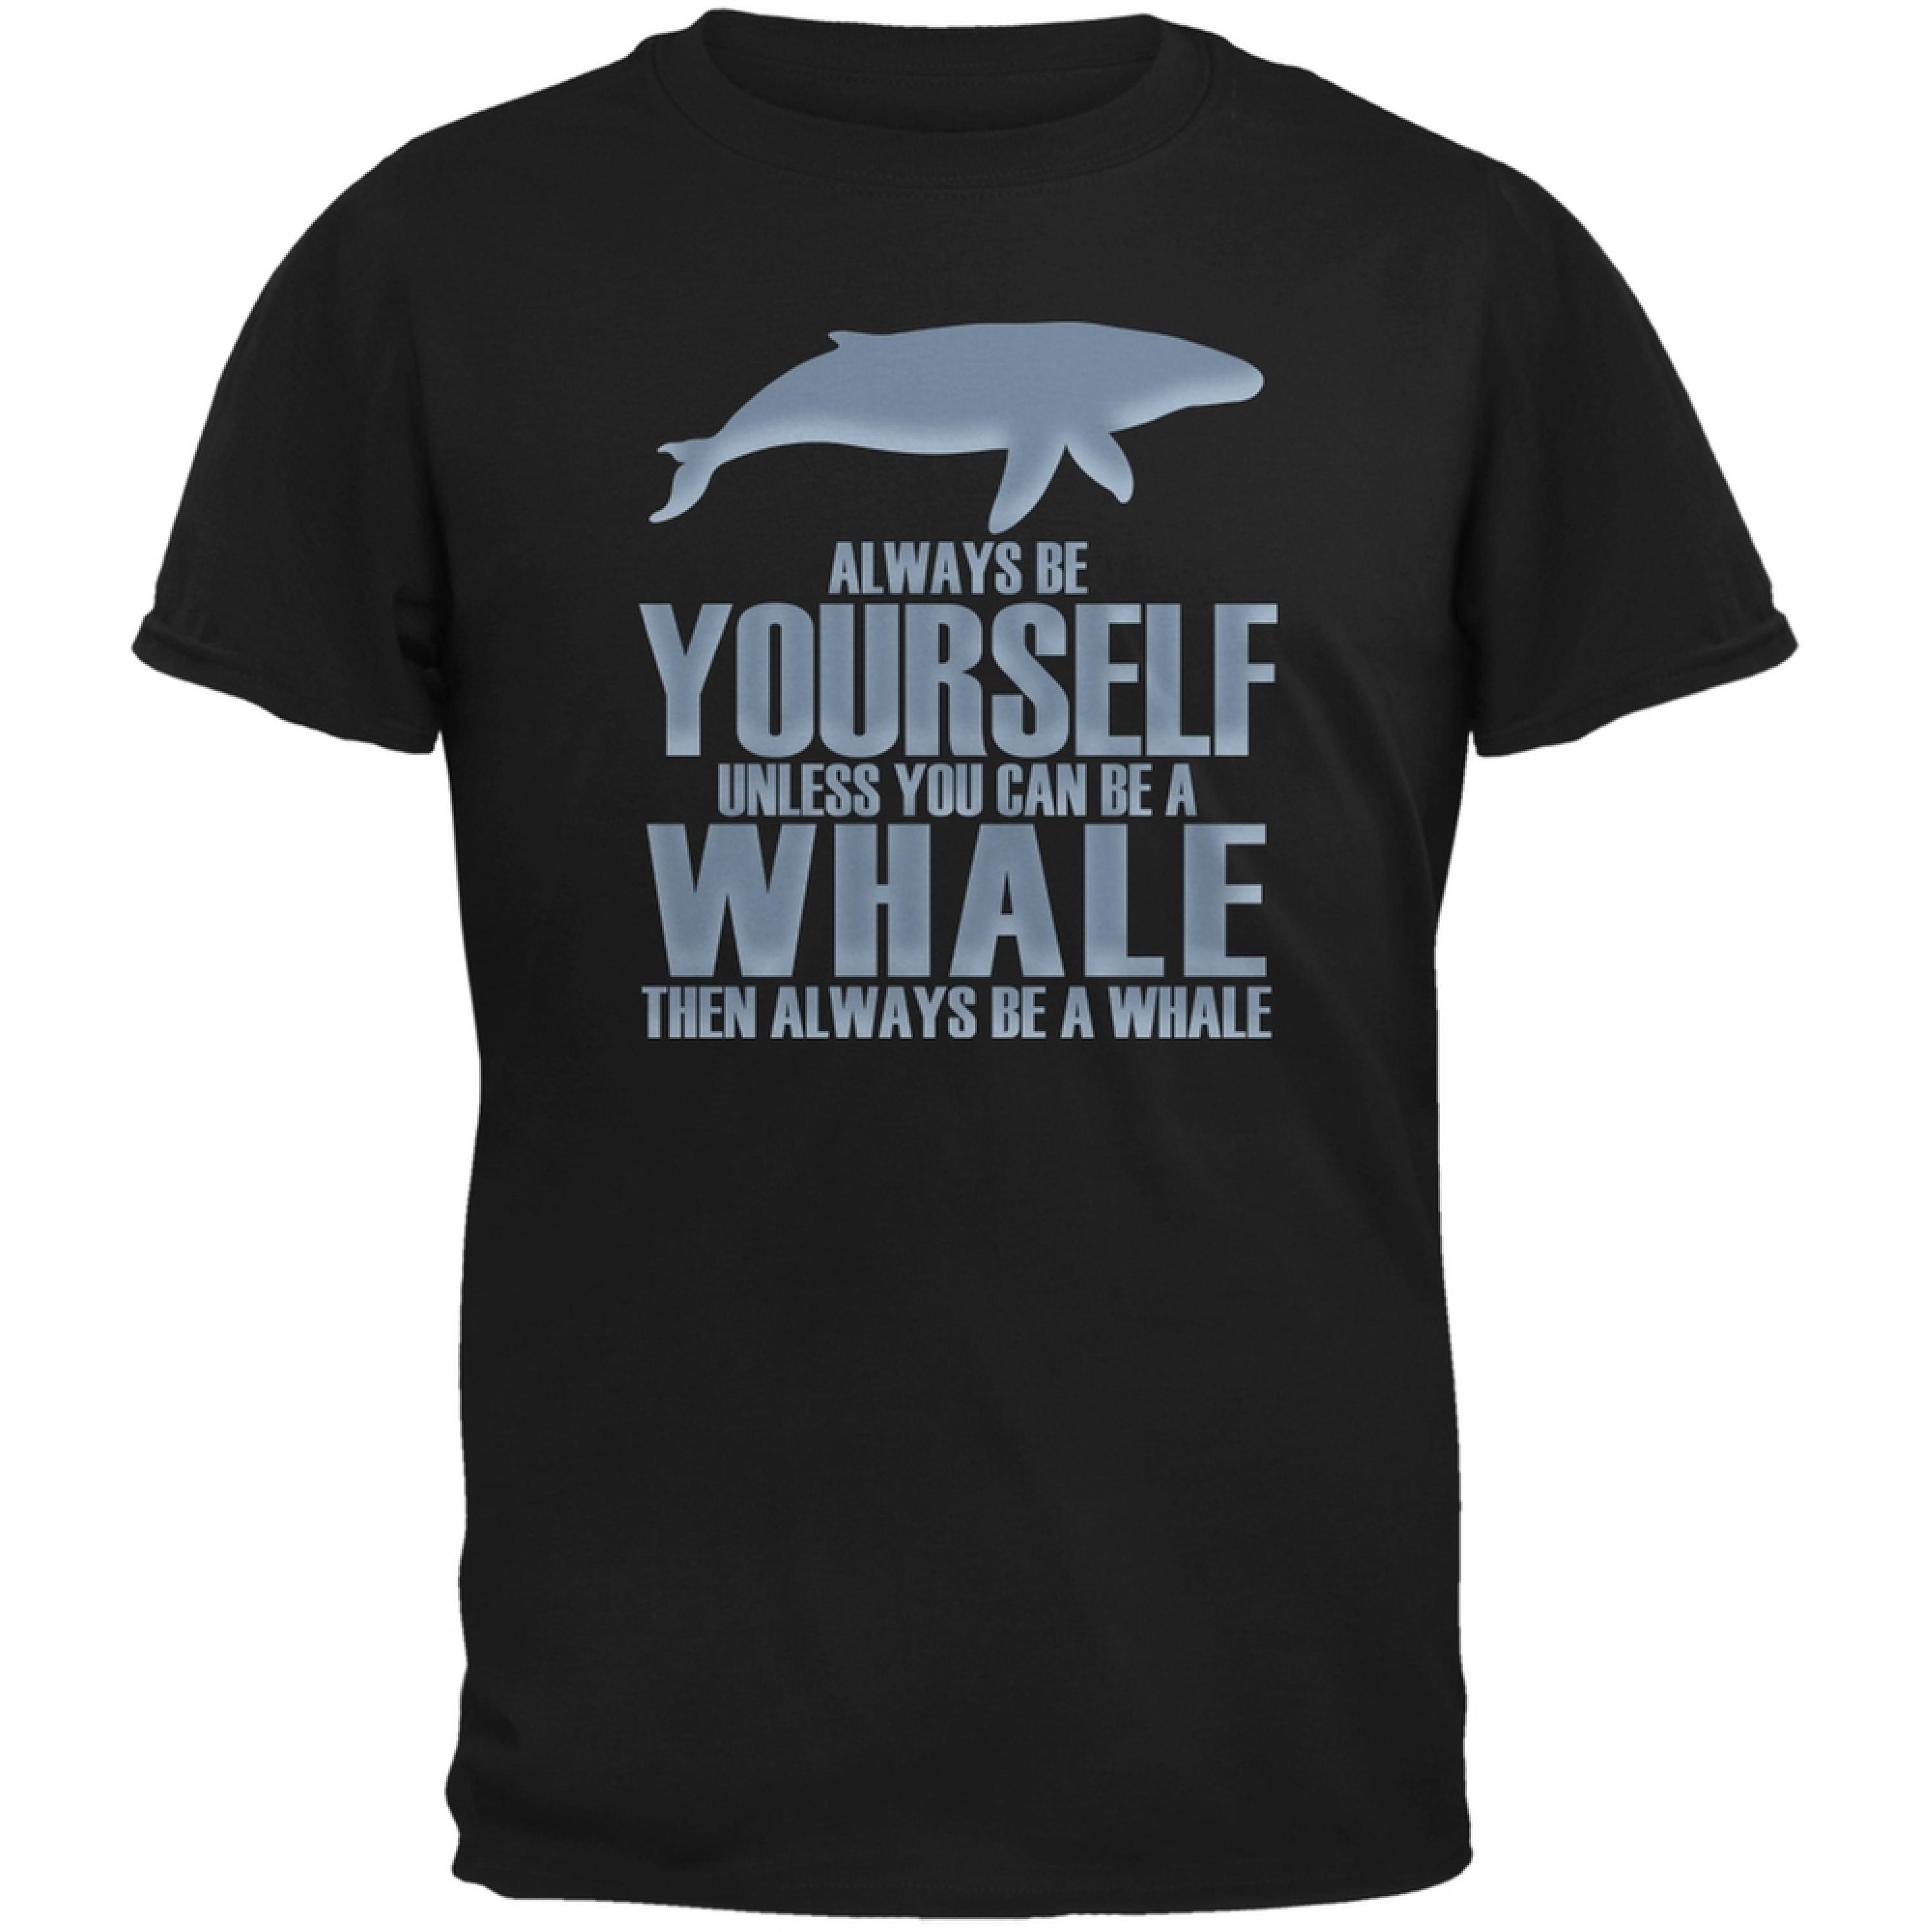 Always Be Yourself Whale Black Adult T-Shirt